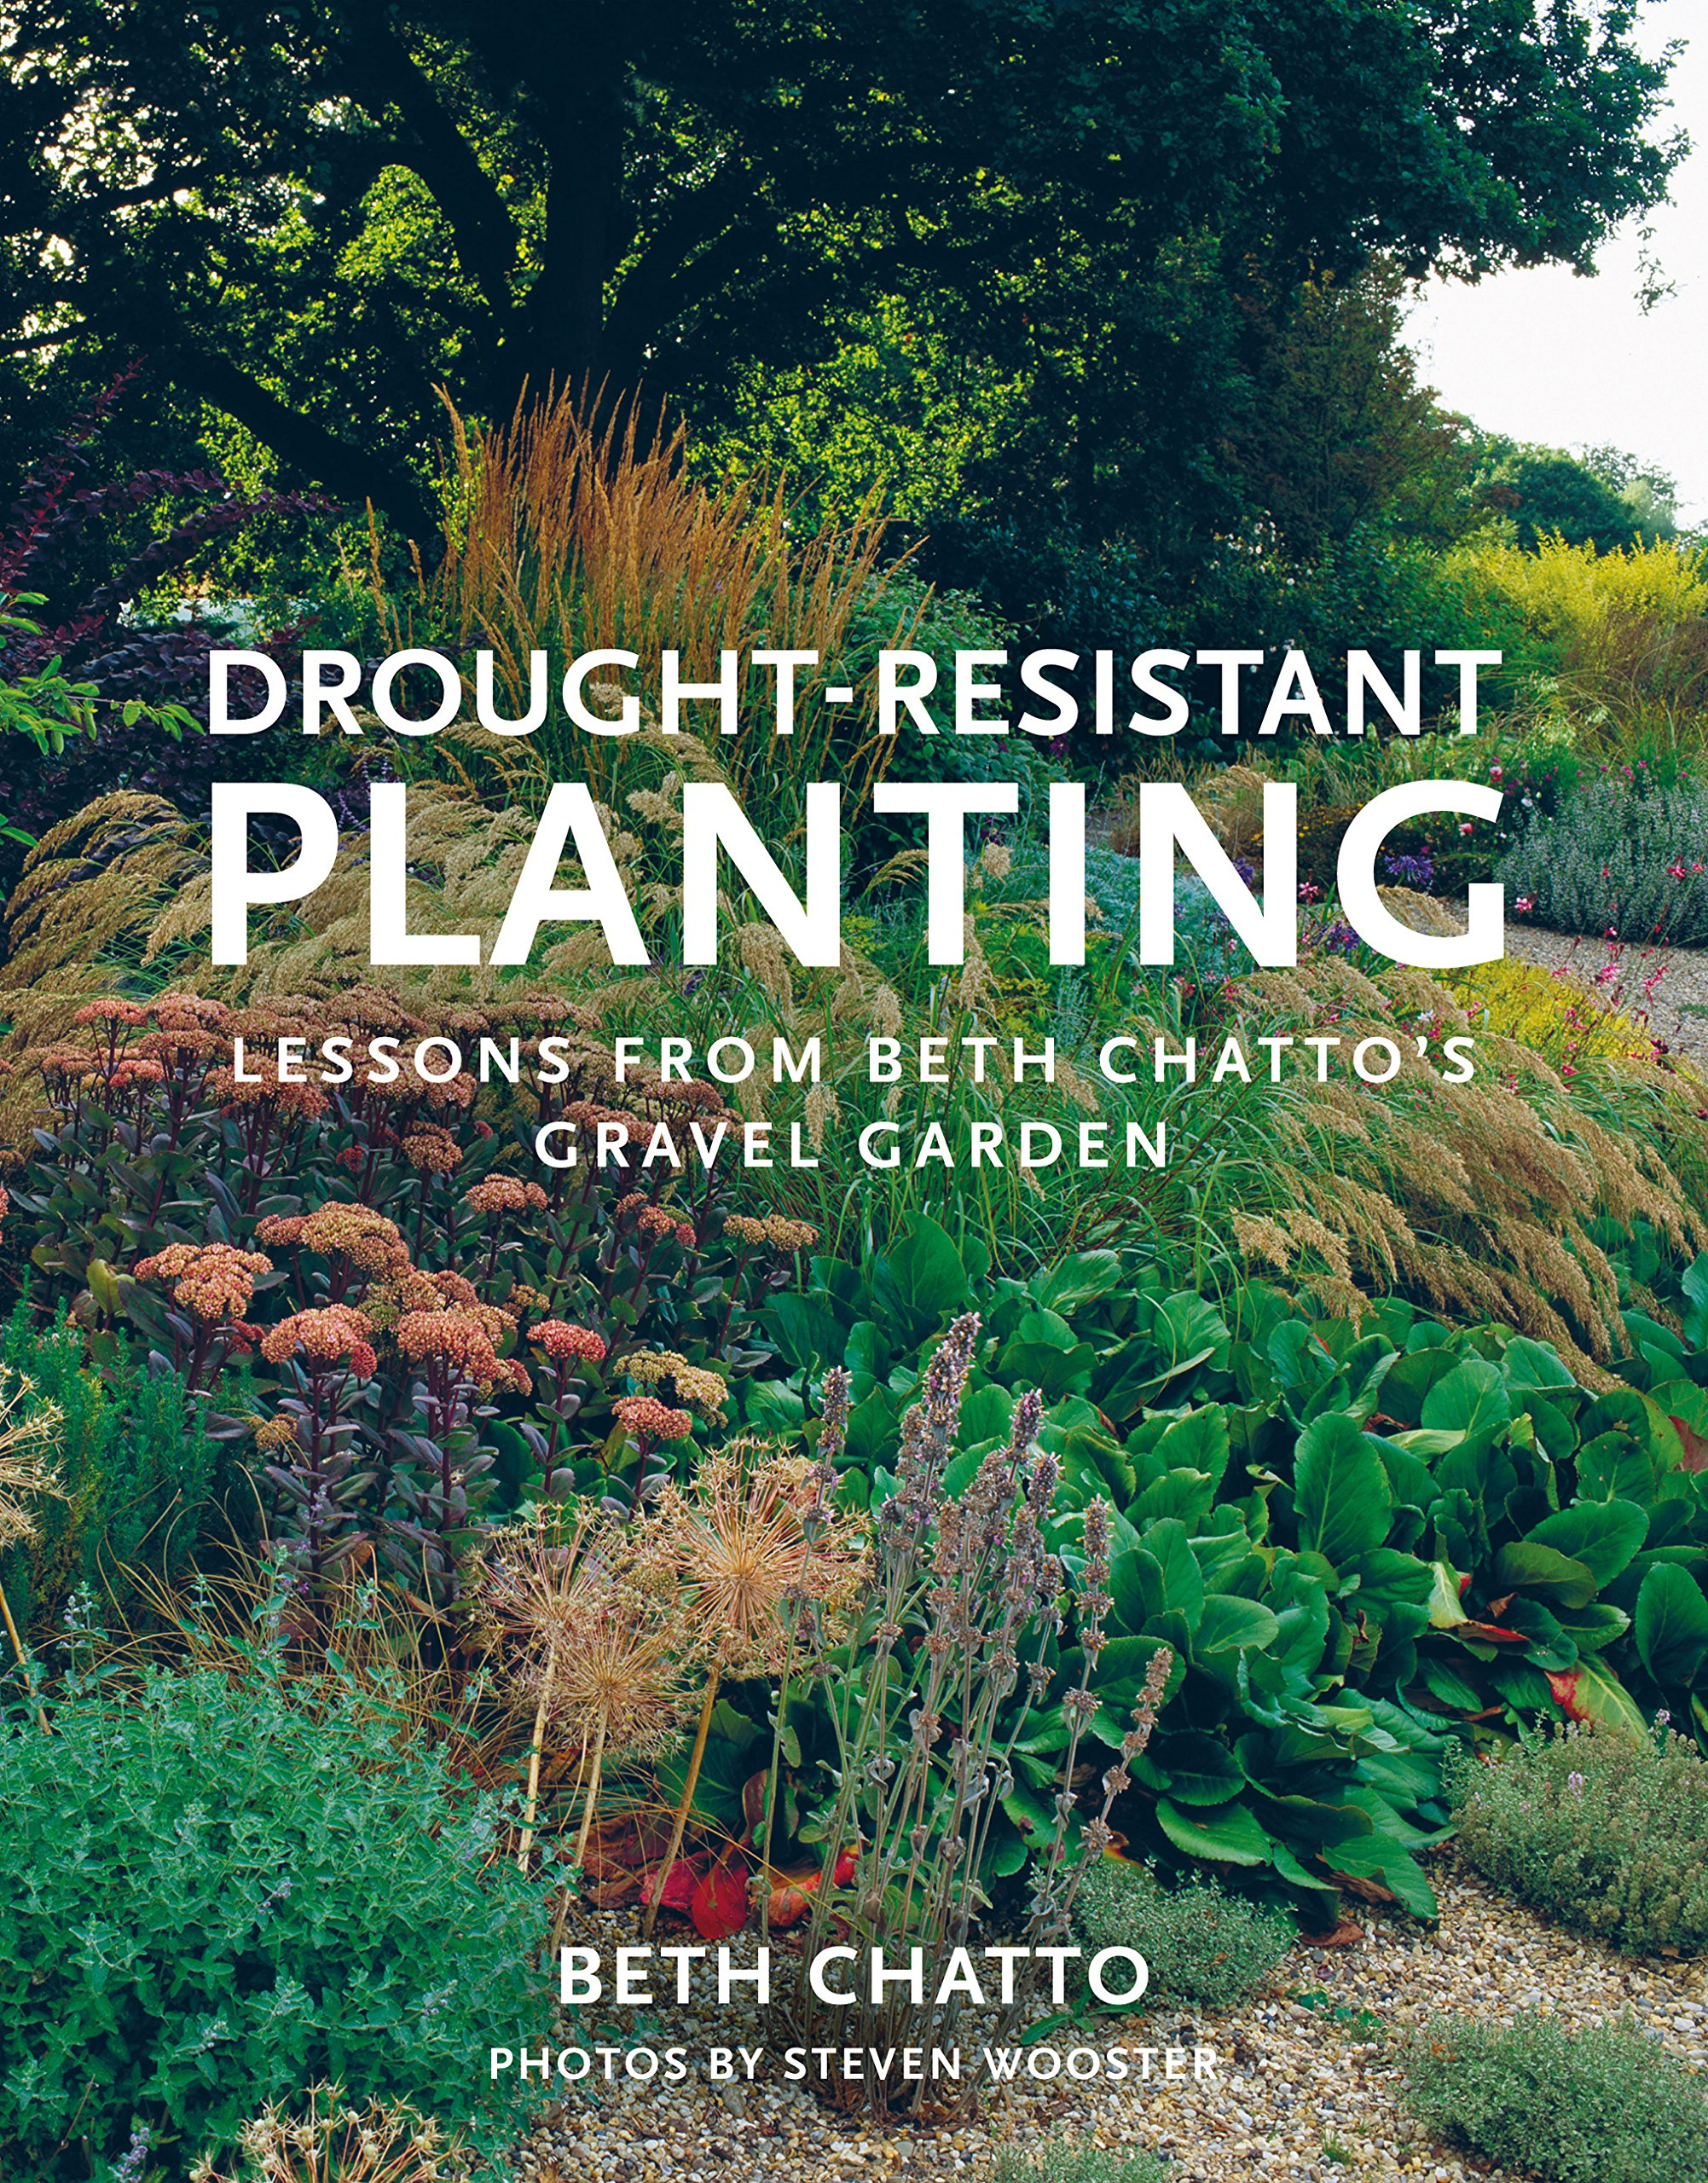 Drought-Resistant Planting: Lessons from Beth Chatto's Gravel Garden